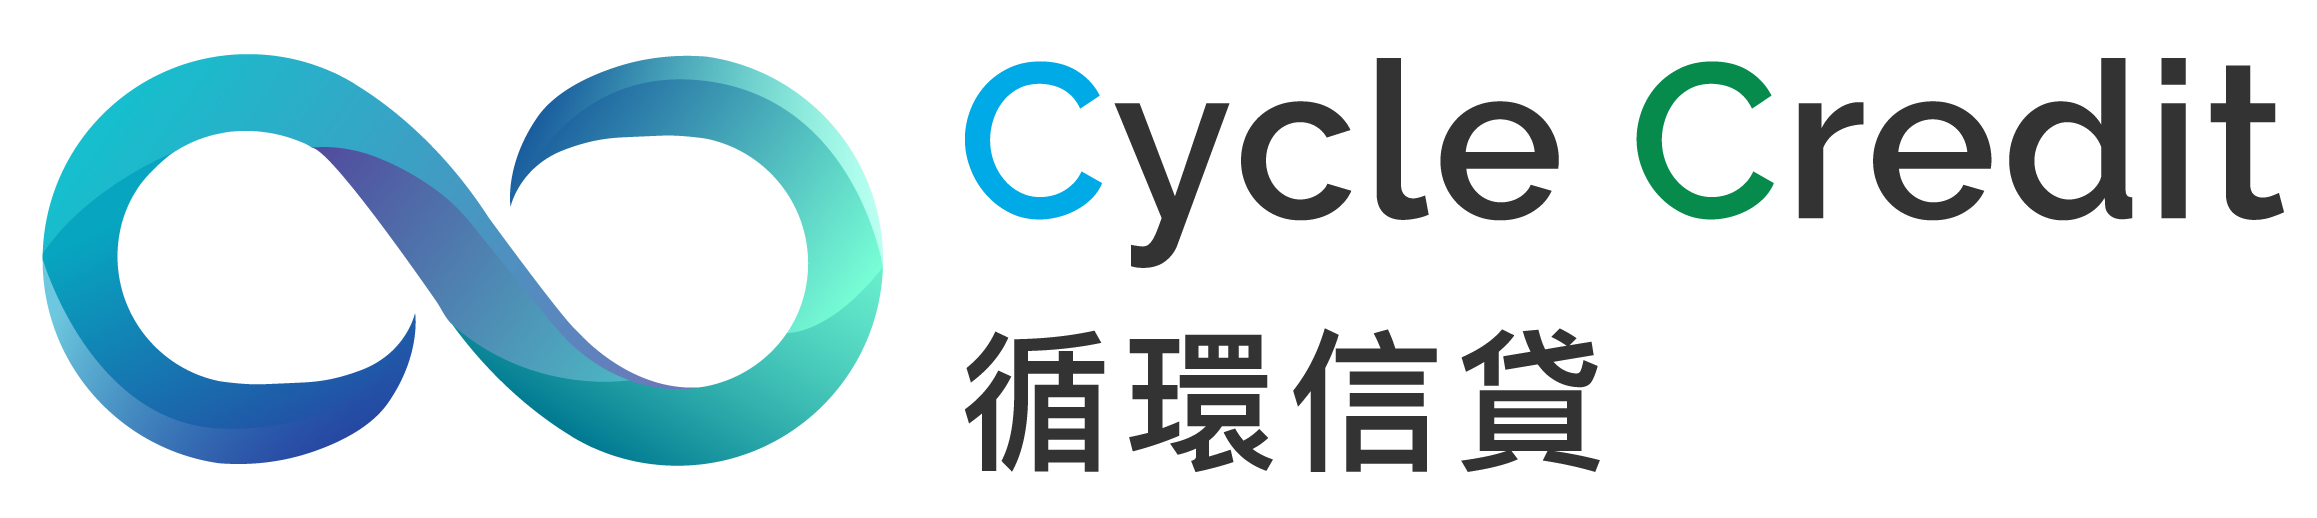 CYCLE CREDIT 循環信貸